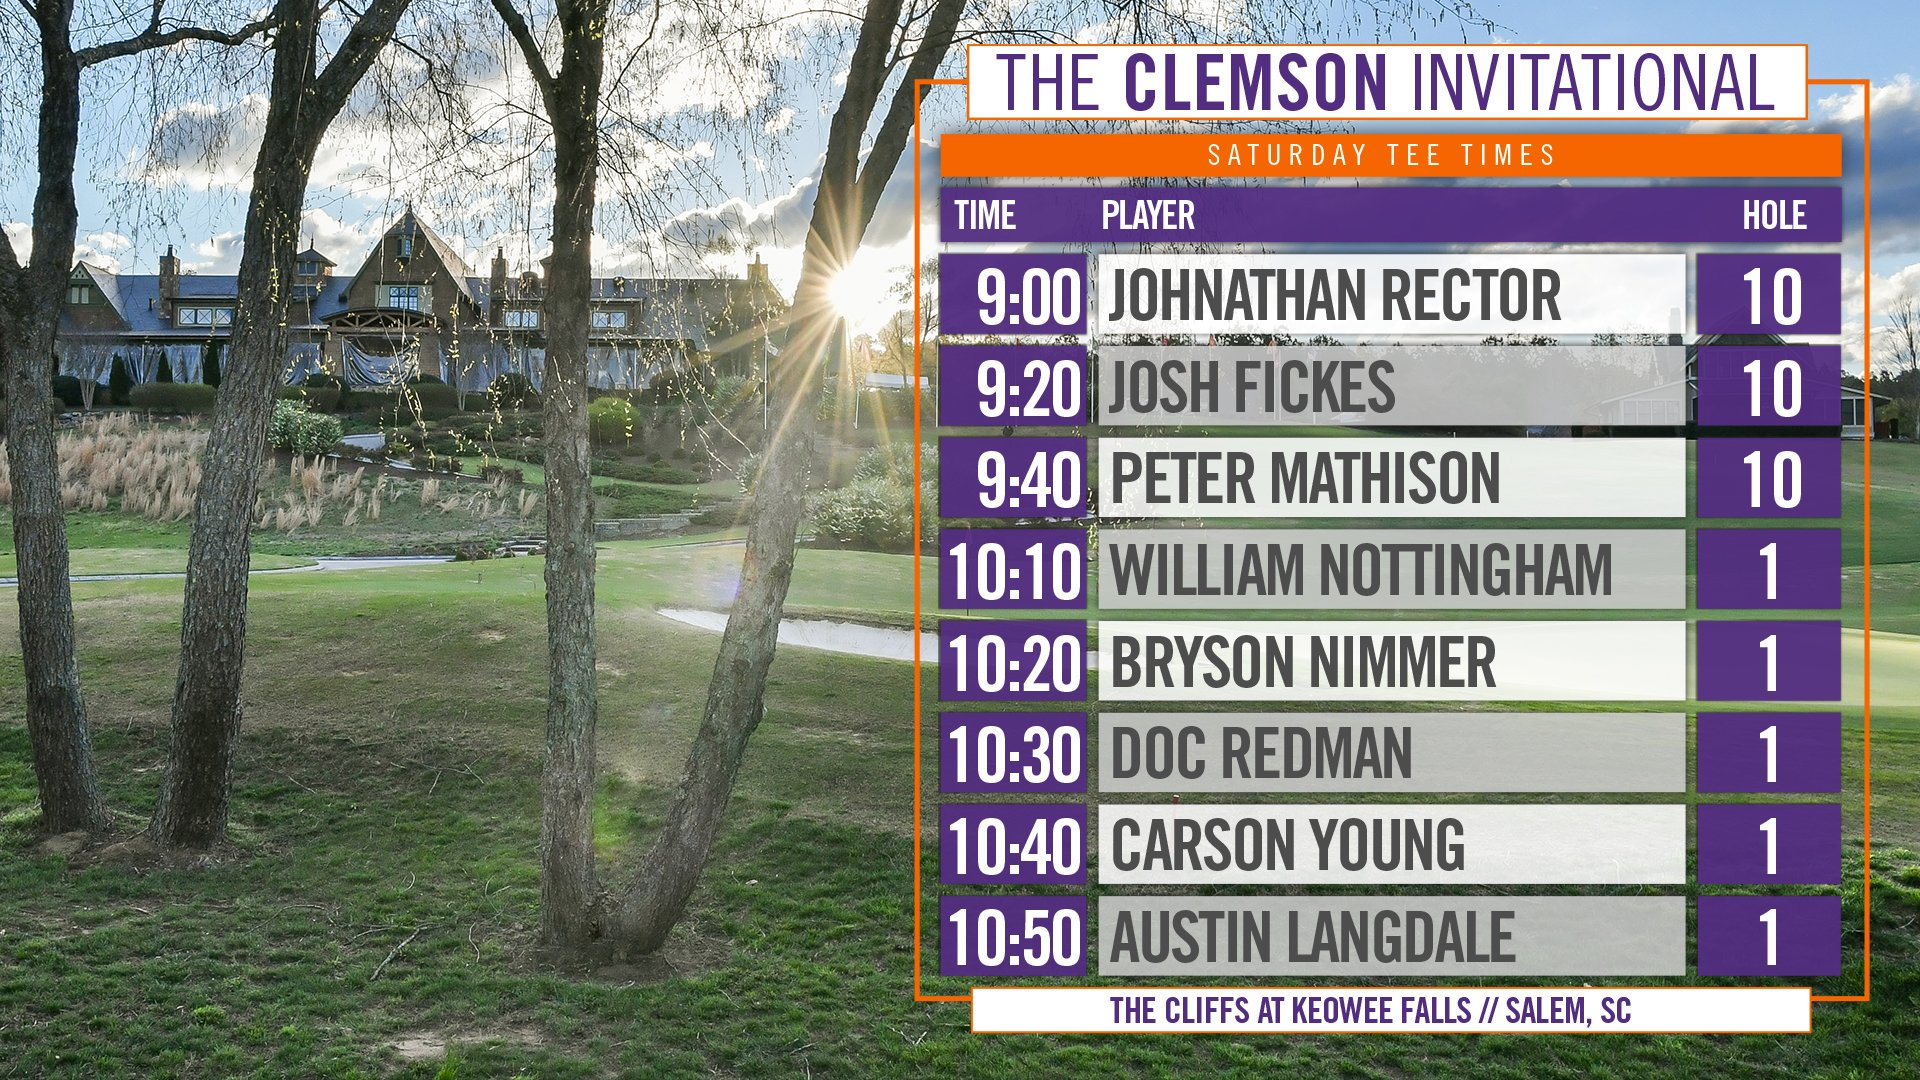 Tiger Tee Times ➡️ #ClemsonInvitational Day 2 ⛳️ Follow from home here: https://t.co/S0ce8b69mS https://t.co/NzbgGxWiYl